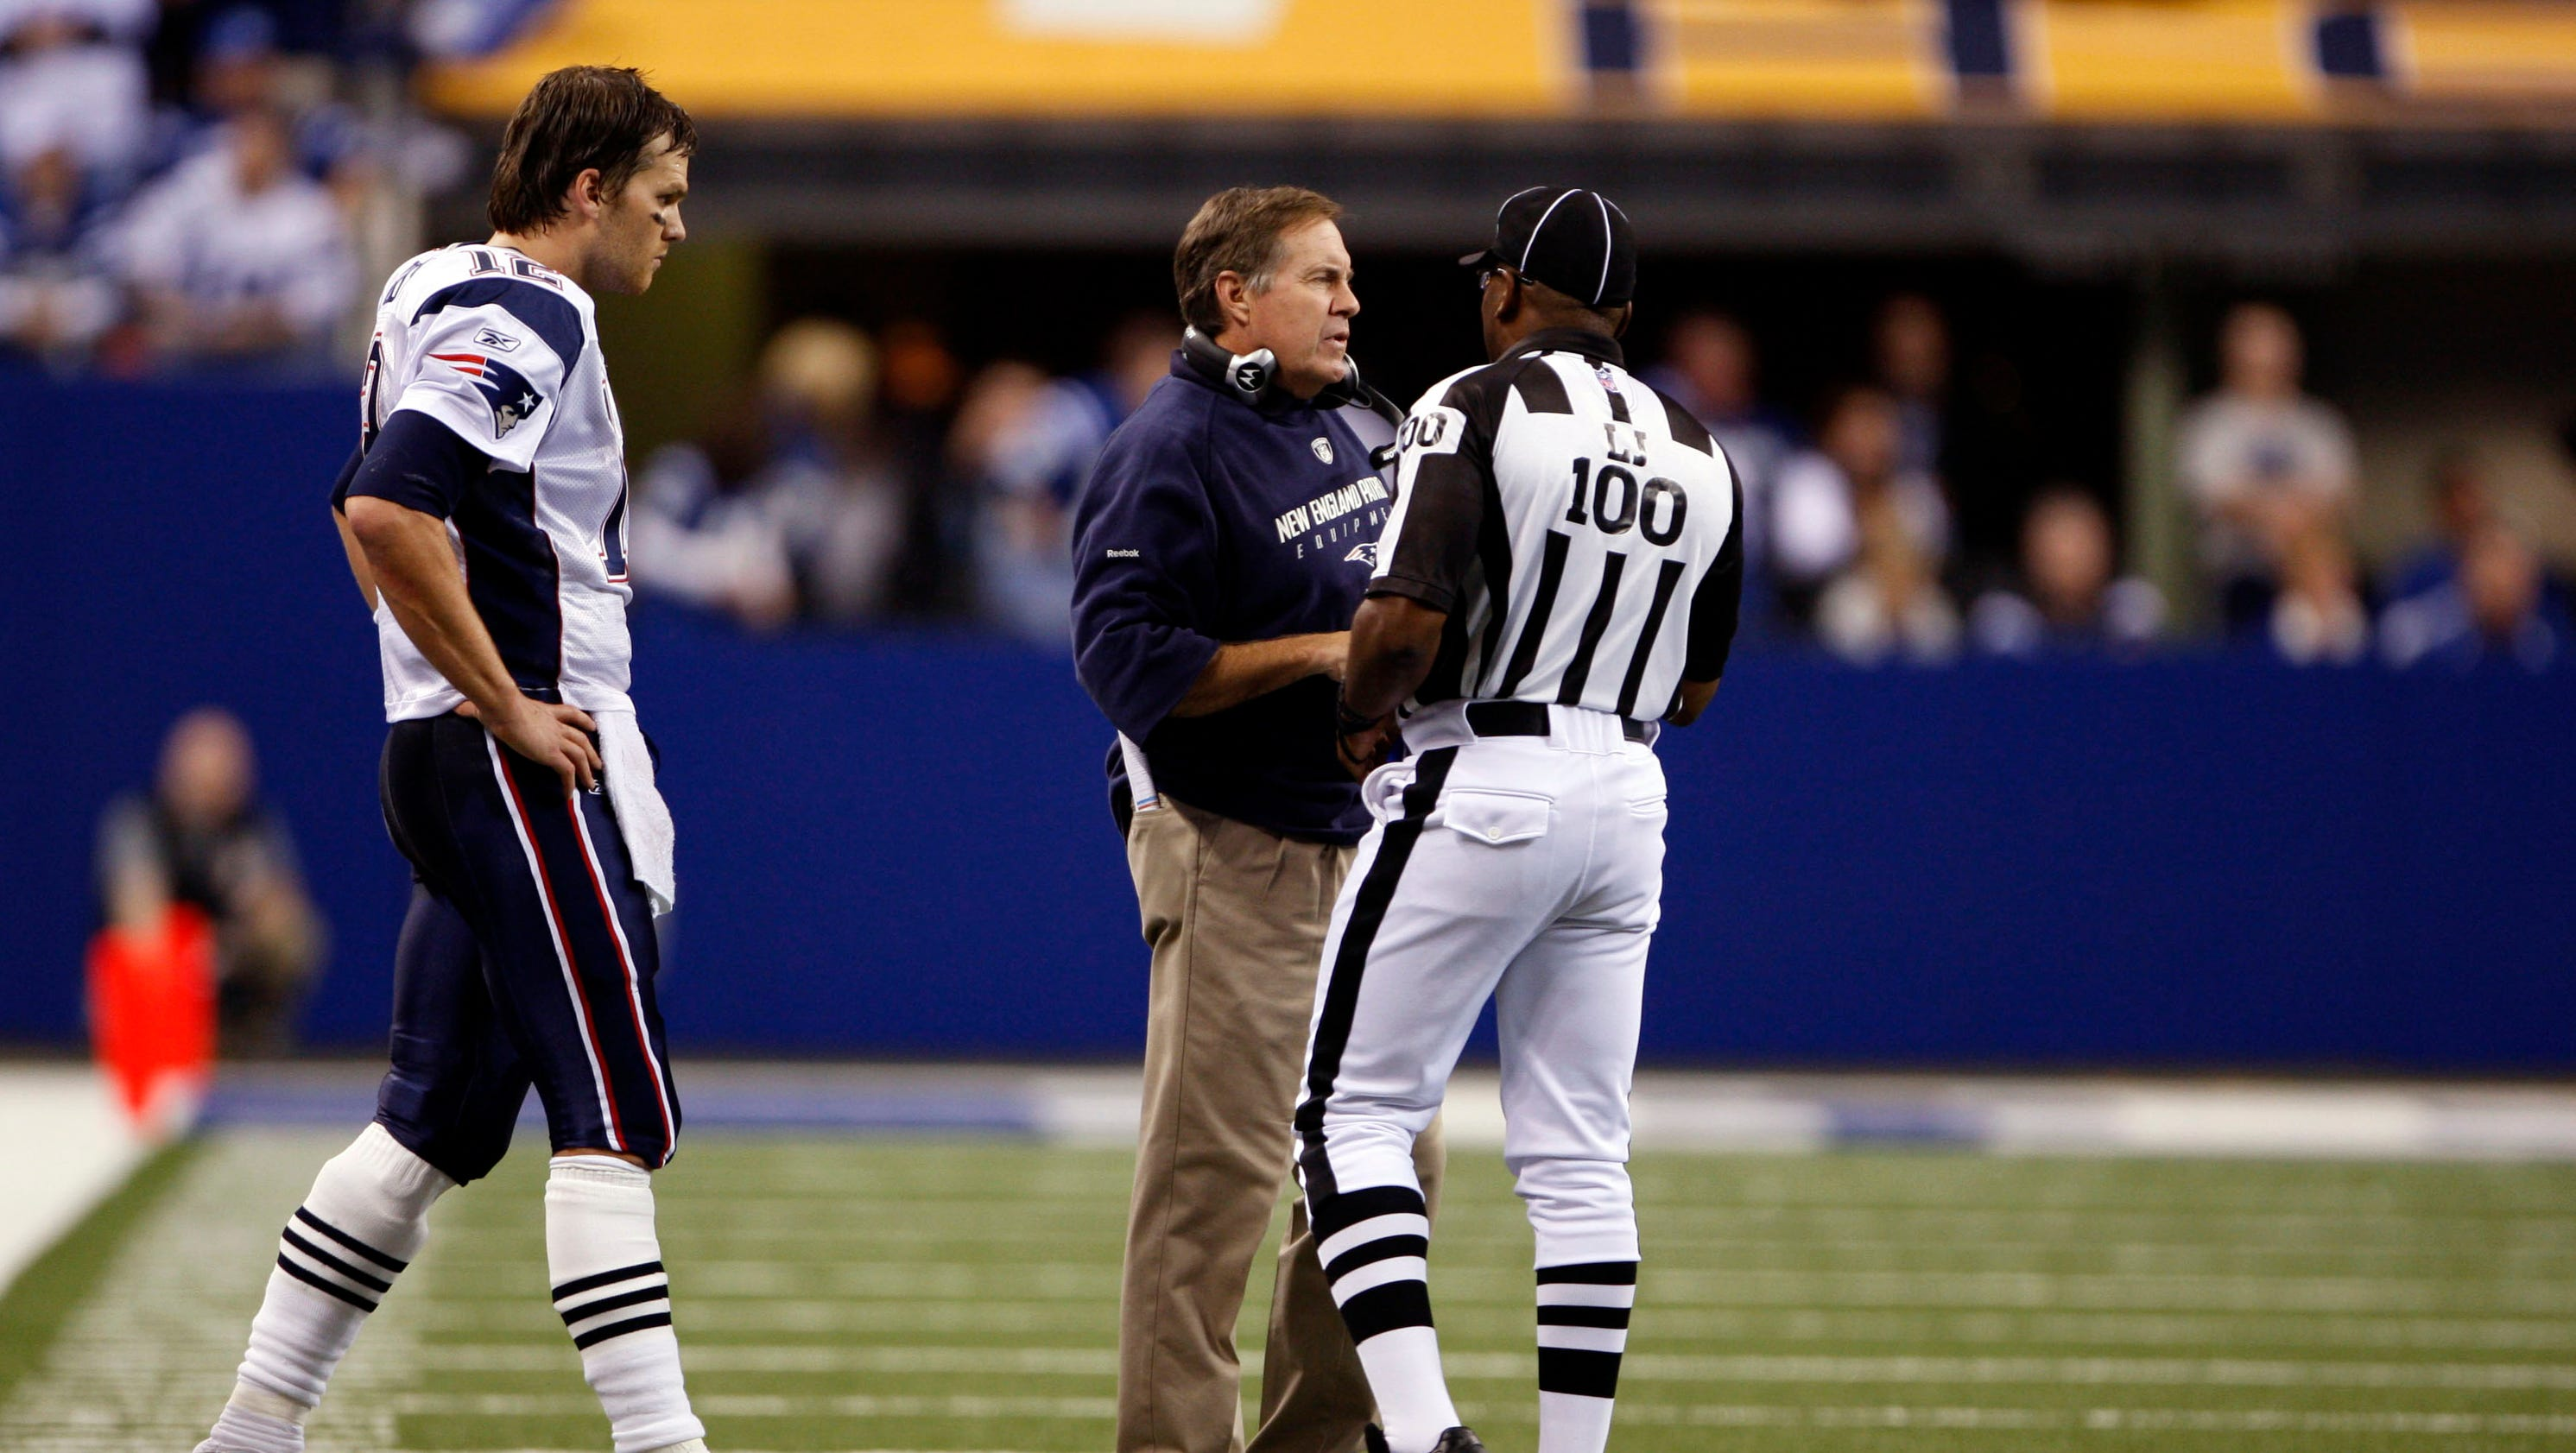 Tom Brady holds decided stats edge over Peyton Manning